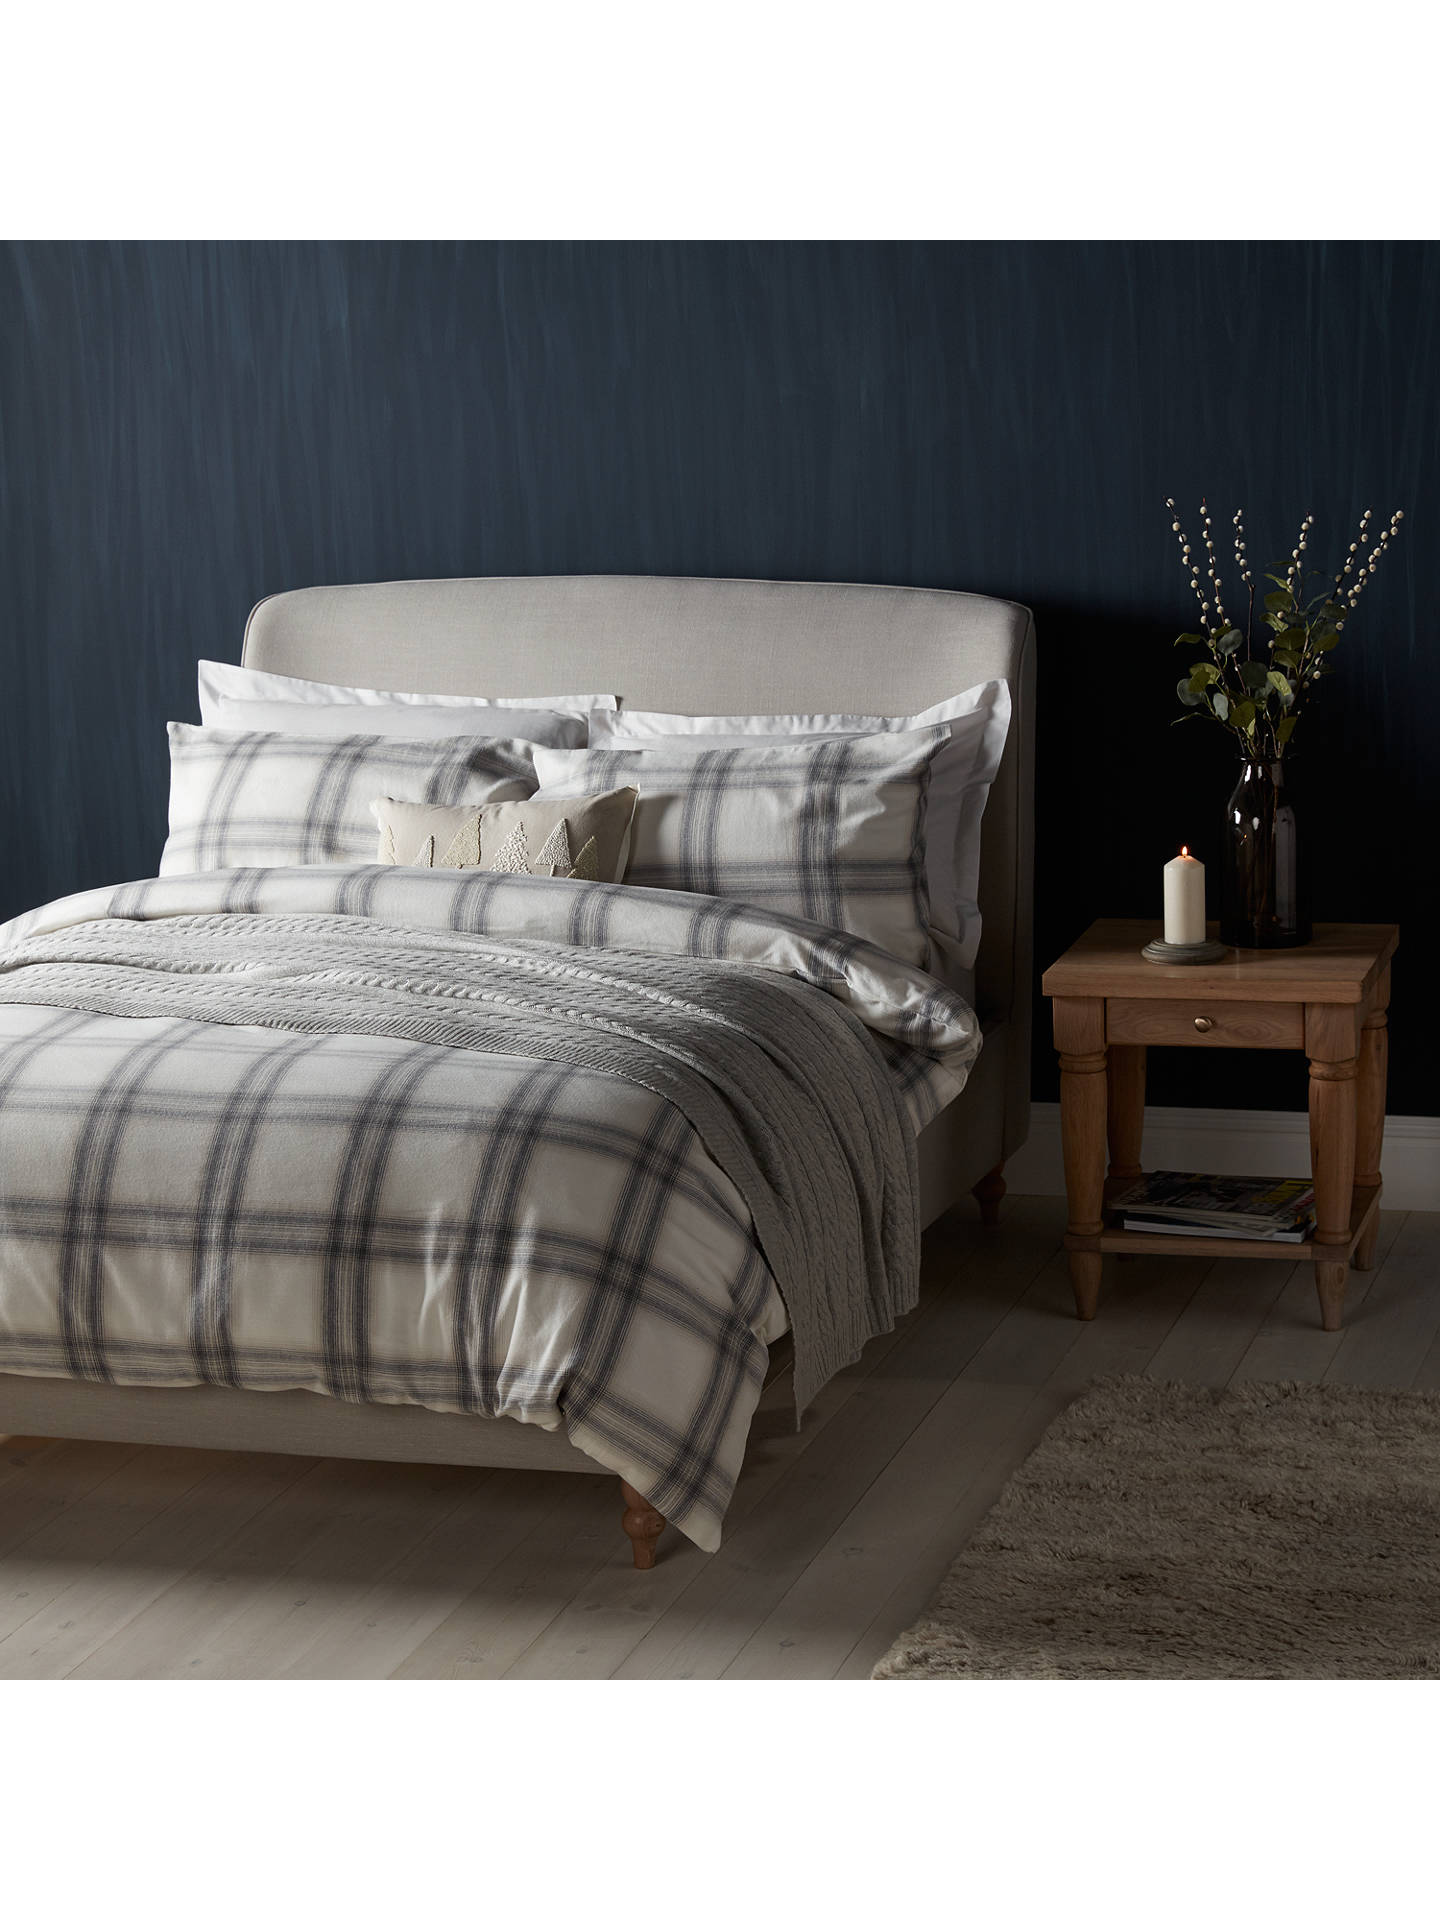 47f6353fae49 Buy John Lewis & Partners Warm and Cosy Ombre Check Brushed Cotton Duvet  Cover and Pillowcase ...